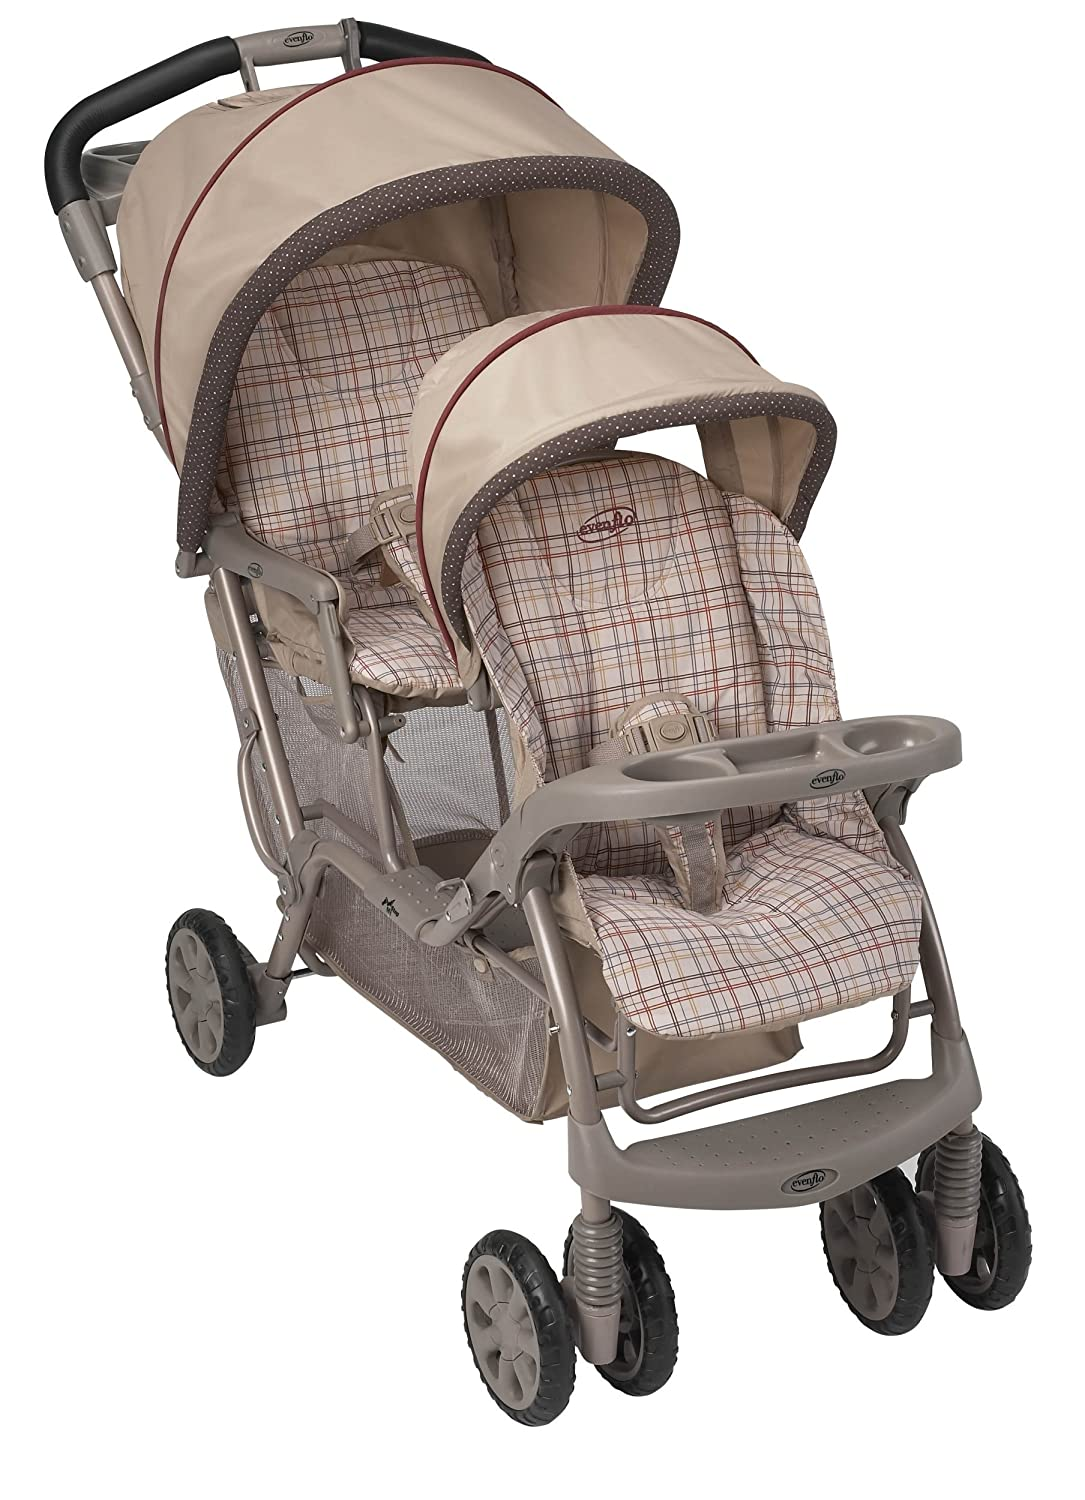 amazoncom  evenflo take me too express tandem stroller    - amazoncom  evenflo take me too express tandem stroller   little bears(discontinued by manufacturer)  baby